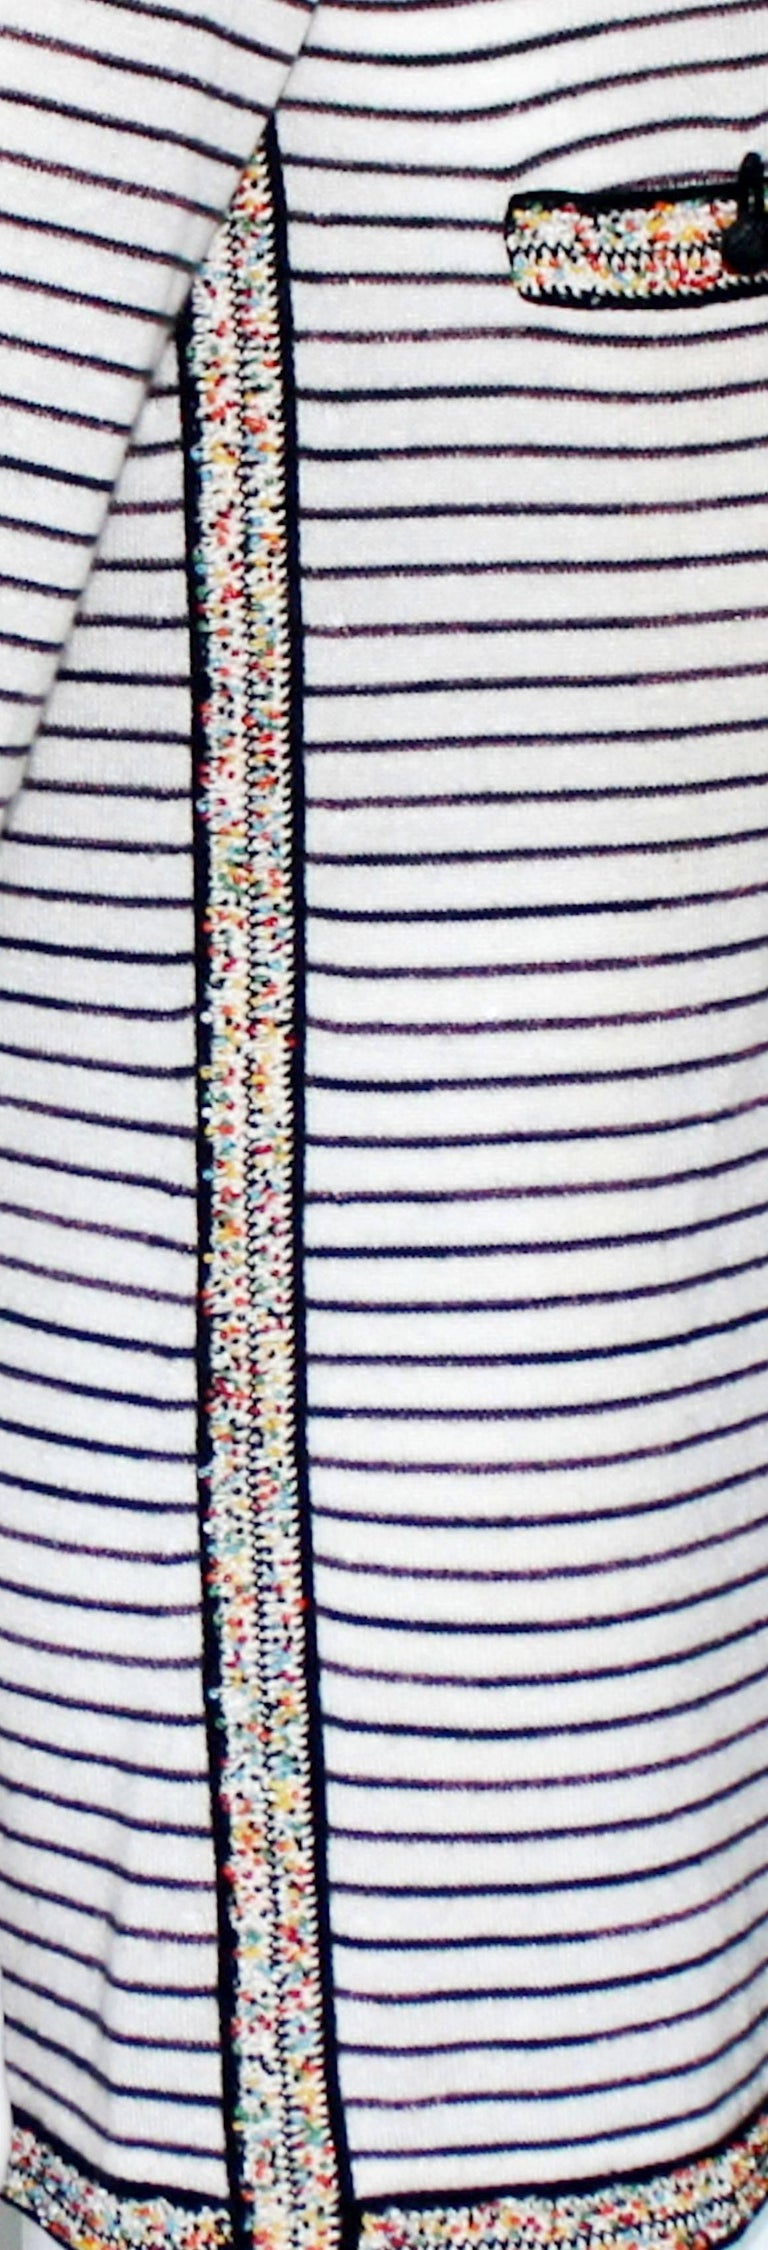 Wonderful Striped Multicolor Chanel Beaded Cashmere Mix Mini Dress  4